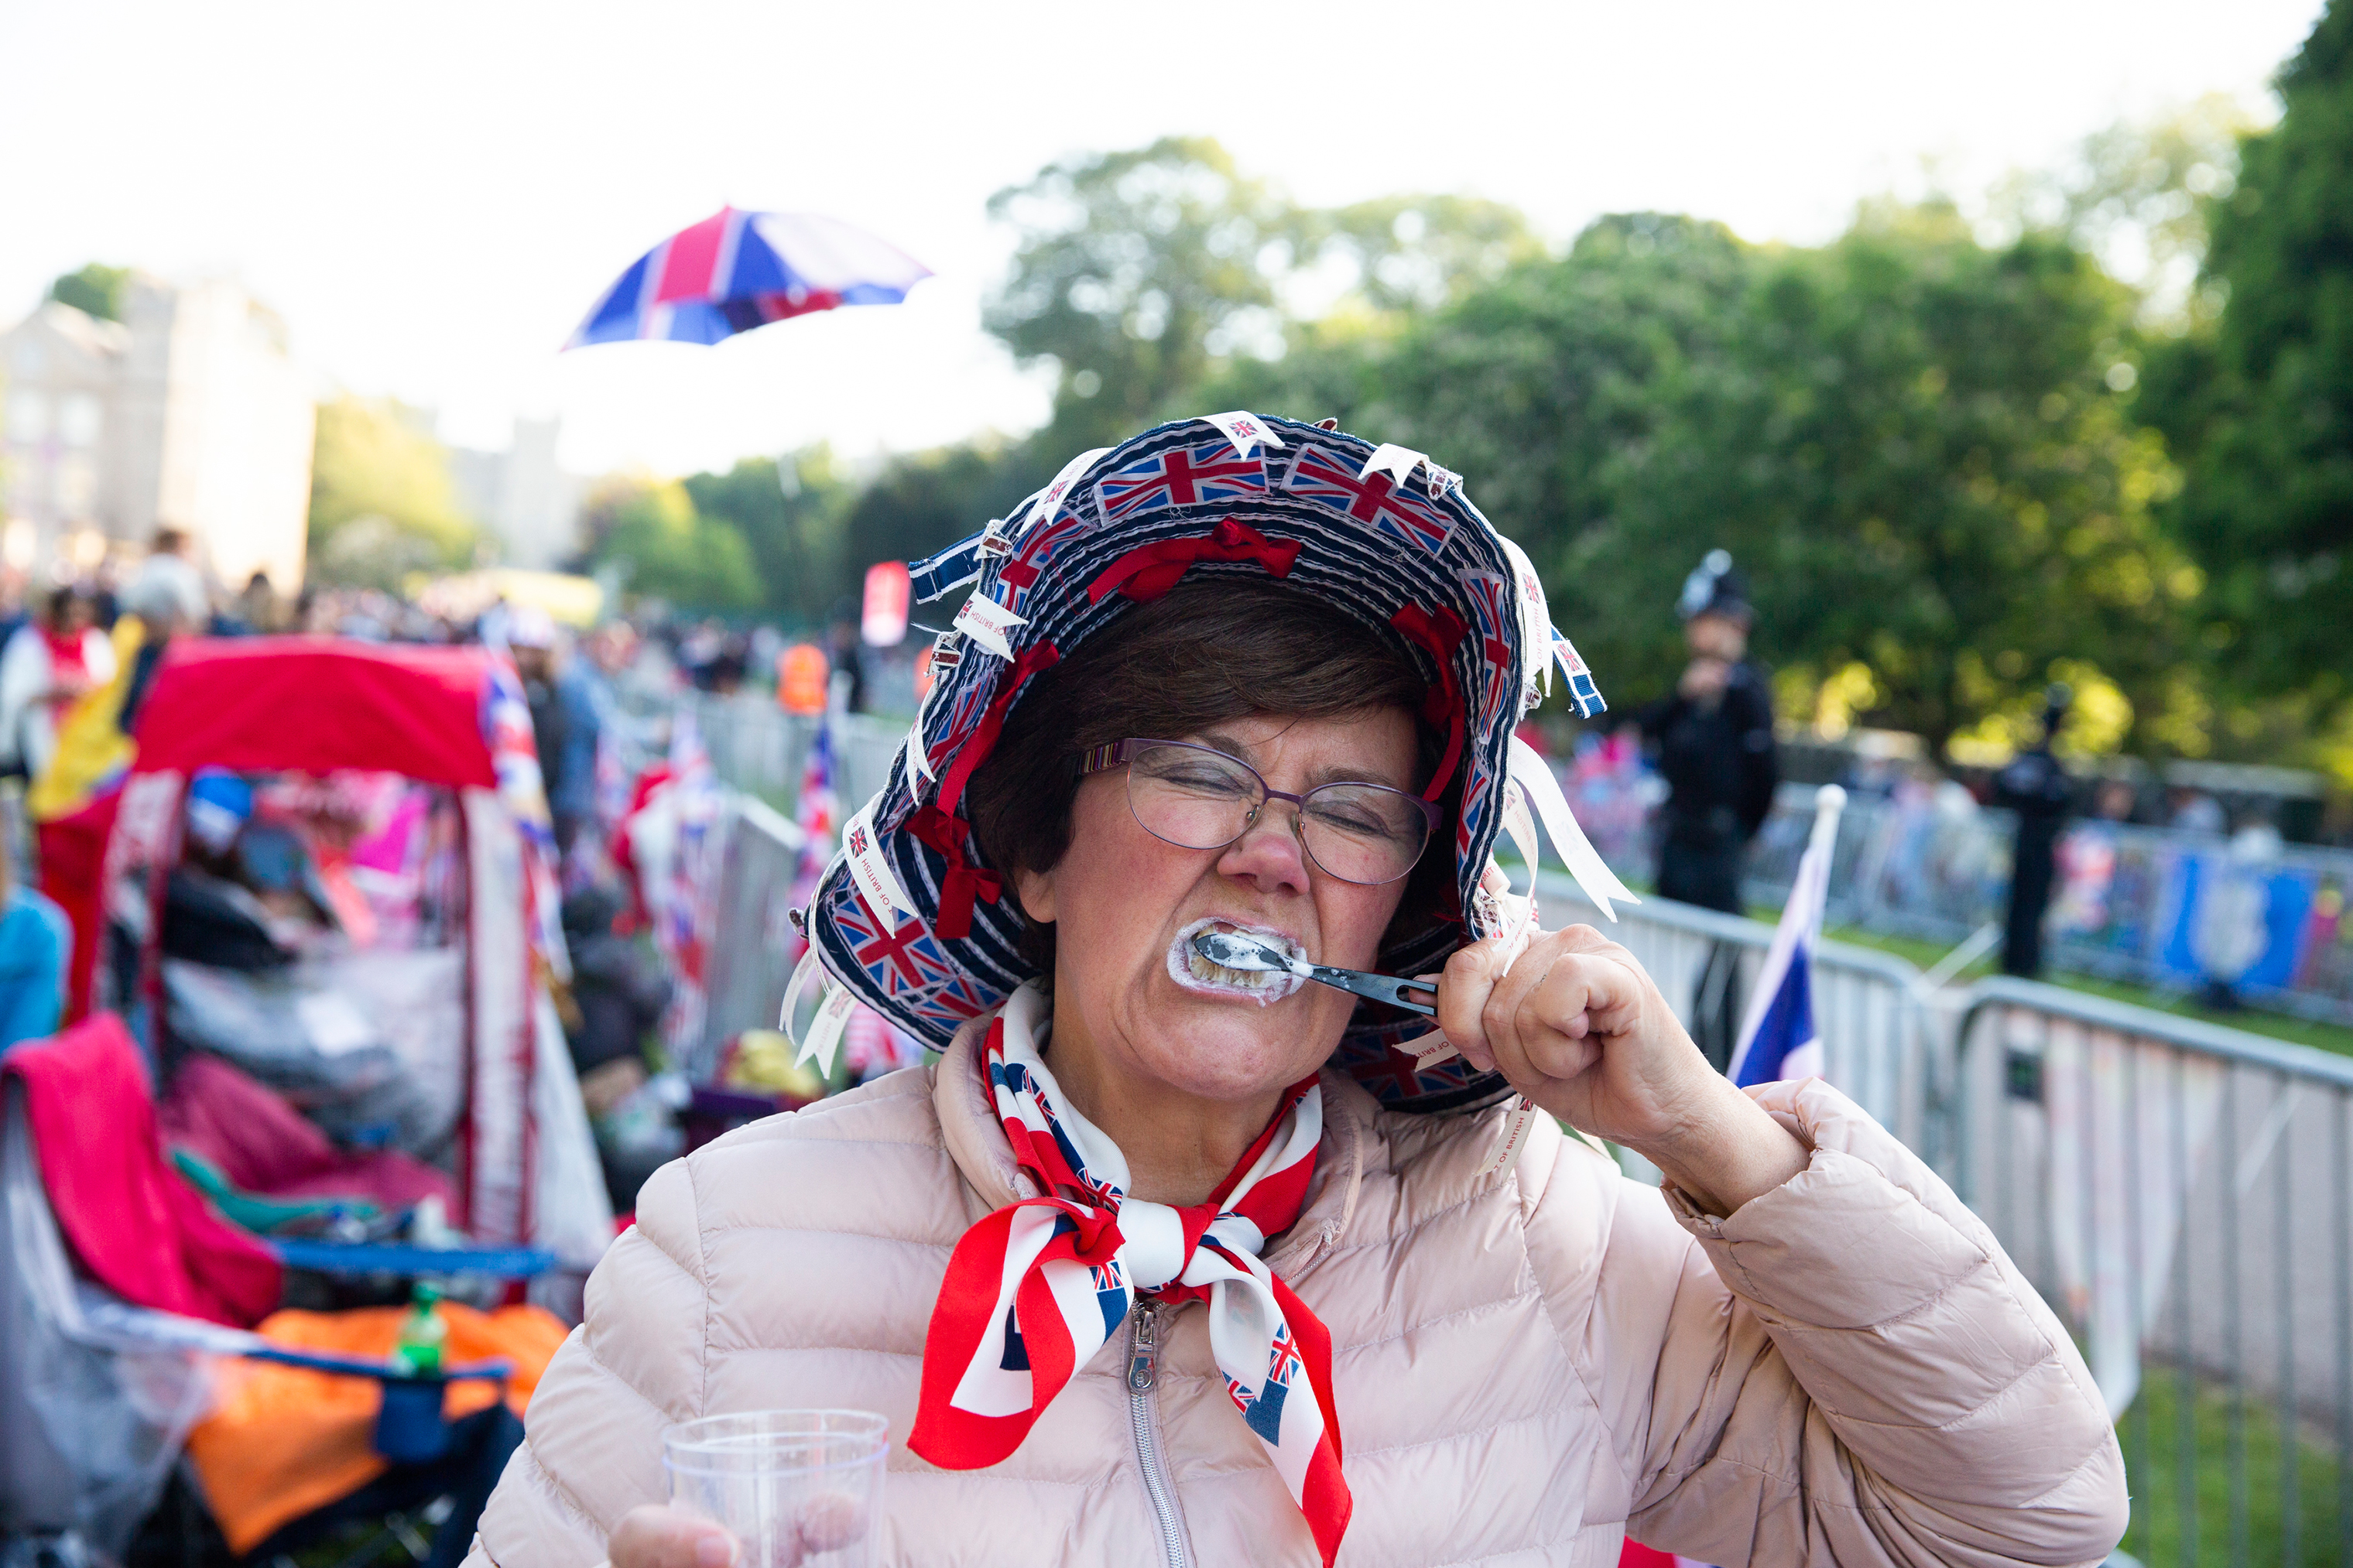 A woman brushes her teeth on the morning of the royal wedding.